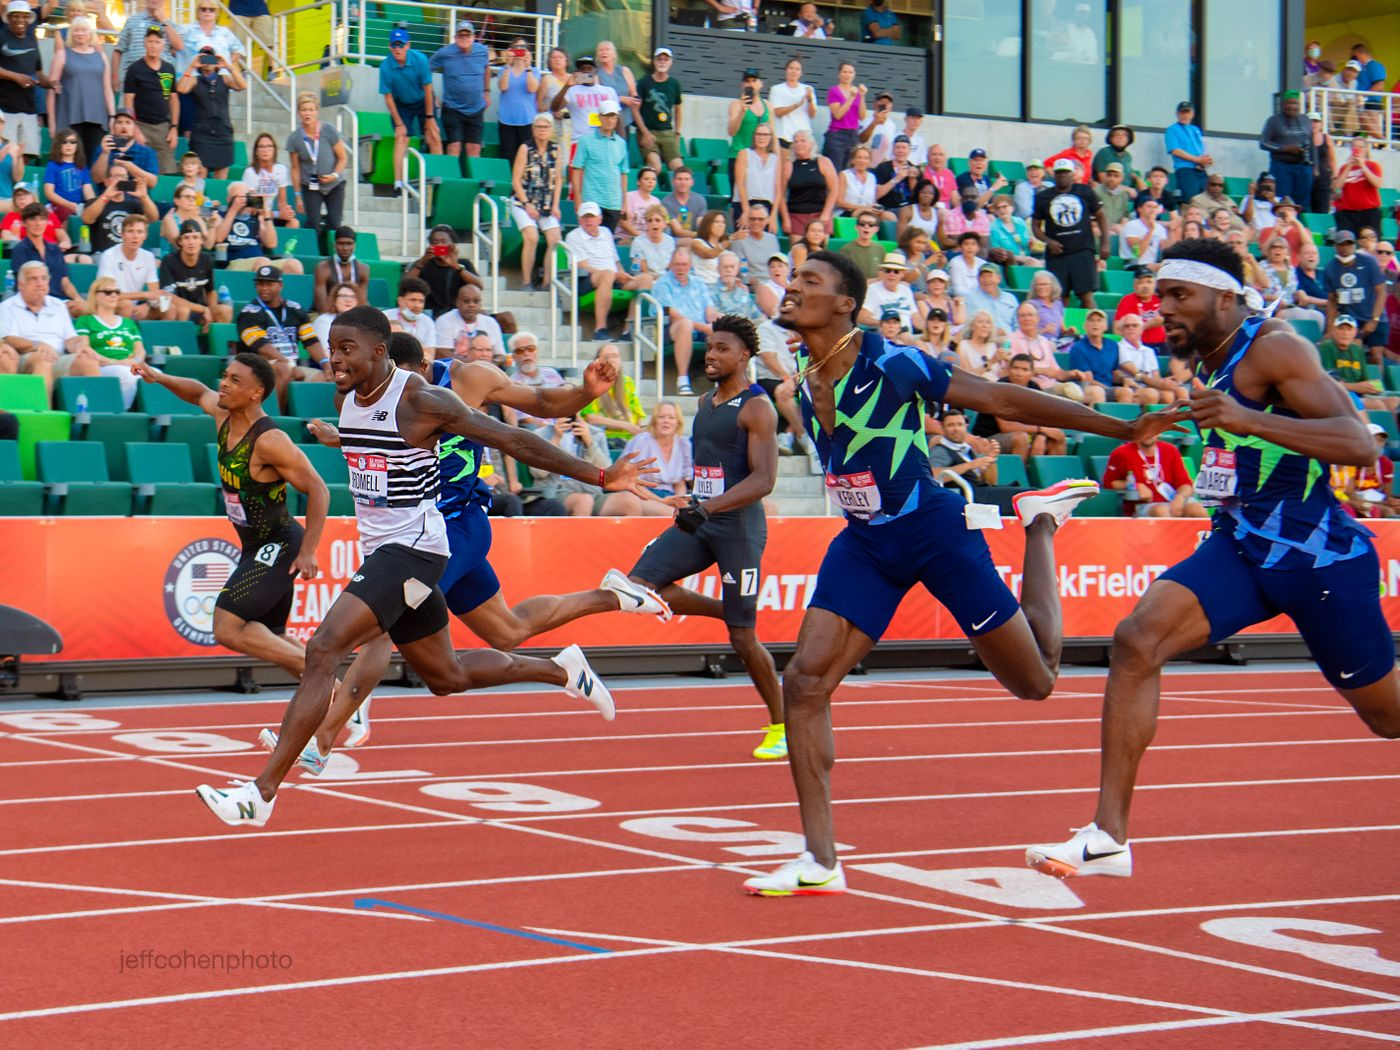 brommell-100m-2021-US-Oly-Trials-day-3-2962-jeff-cohen-photo--web.jpg